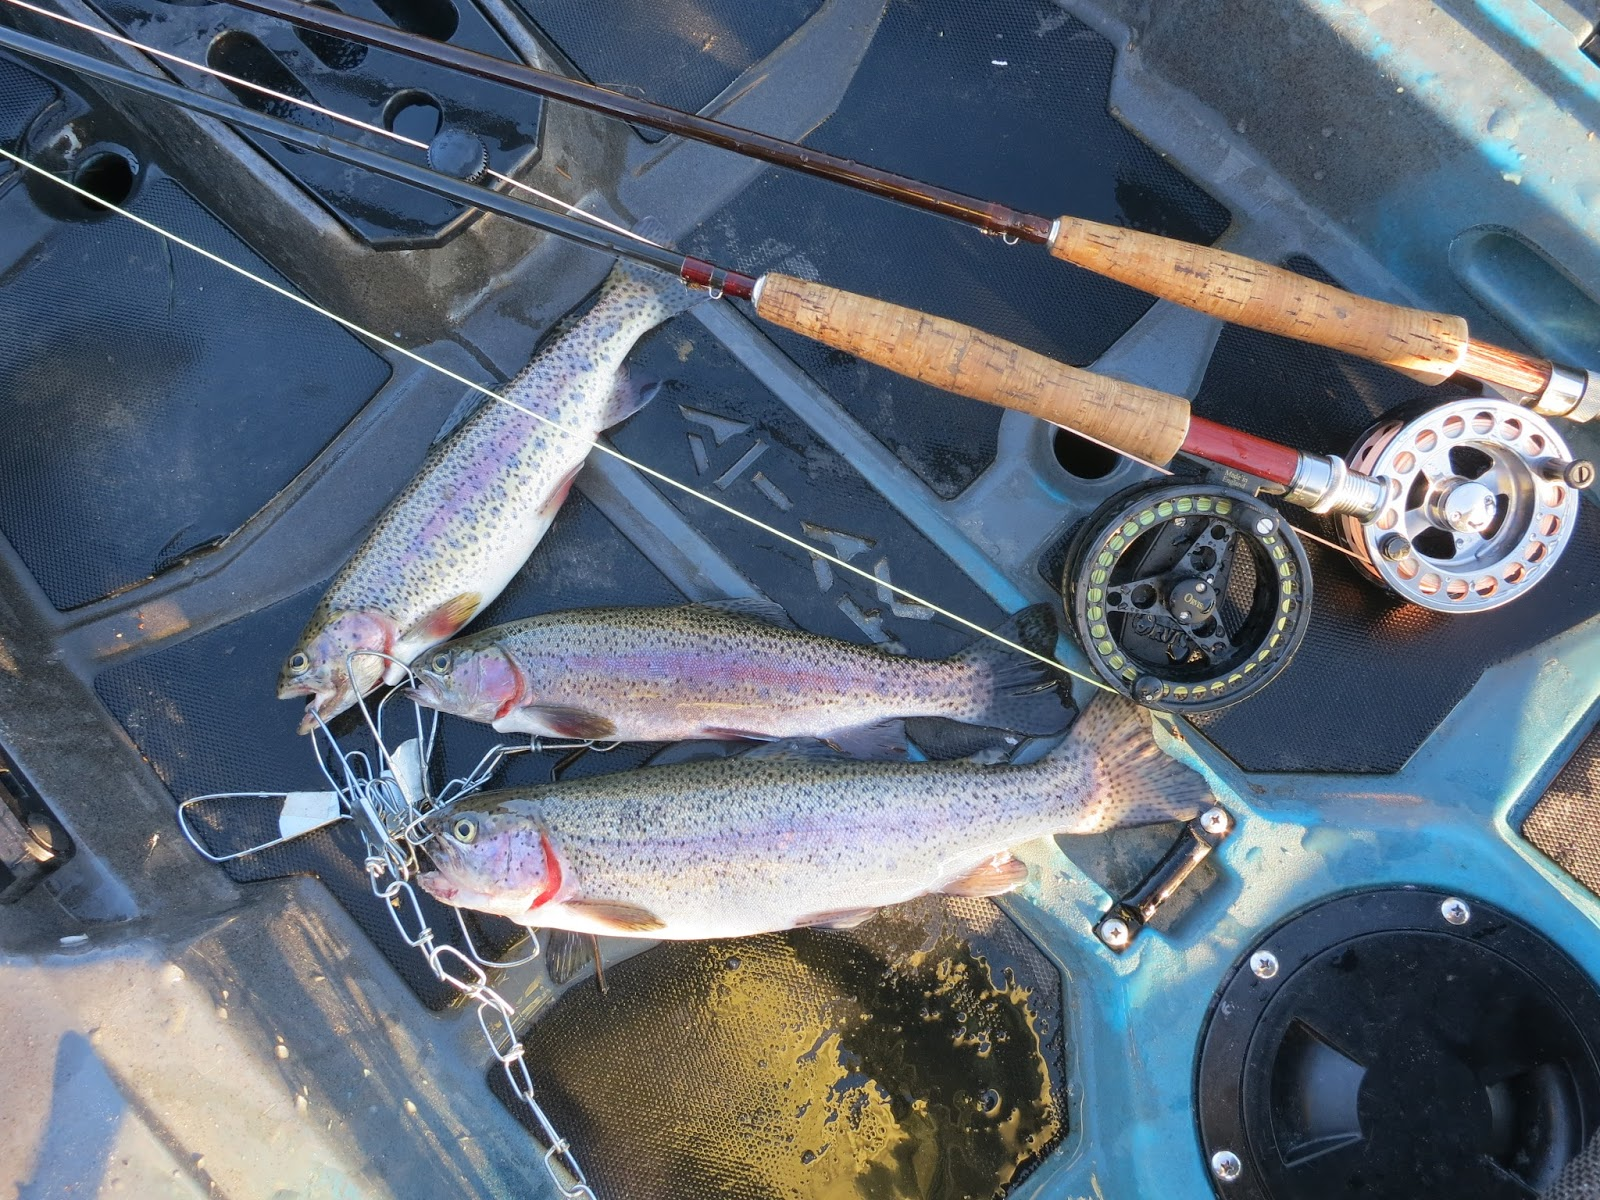 Man powered fishing how to choose the best fly rod weight here are a few of my recommendations on choosing the right fly rod weight for any application nvjuhfo Images